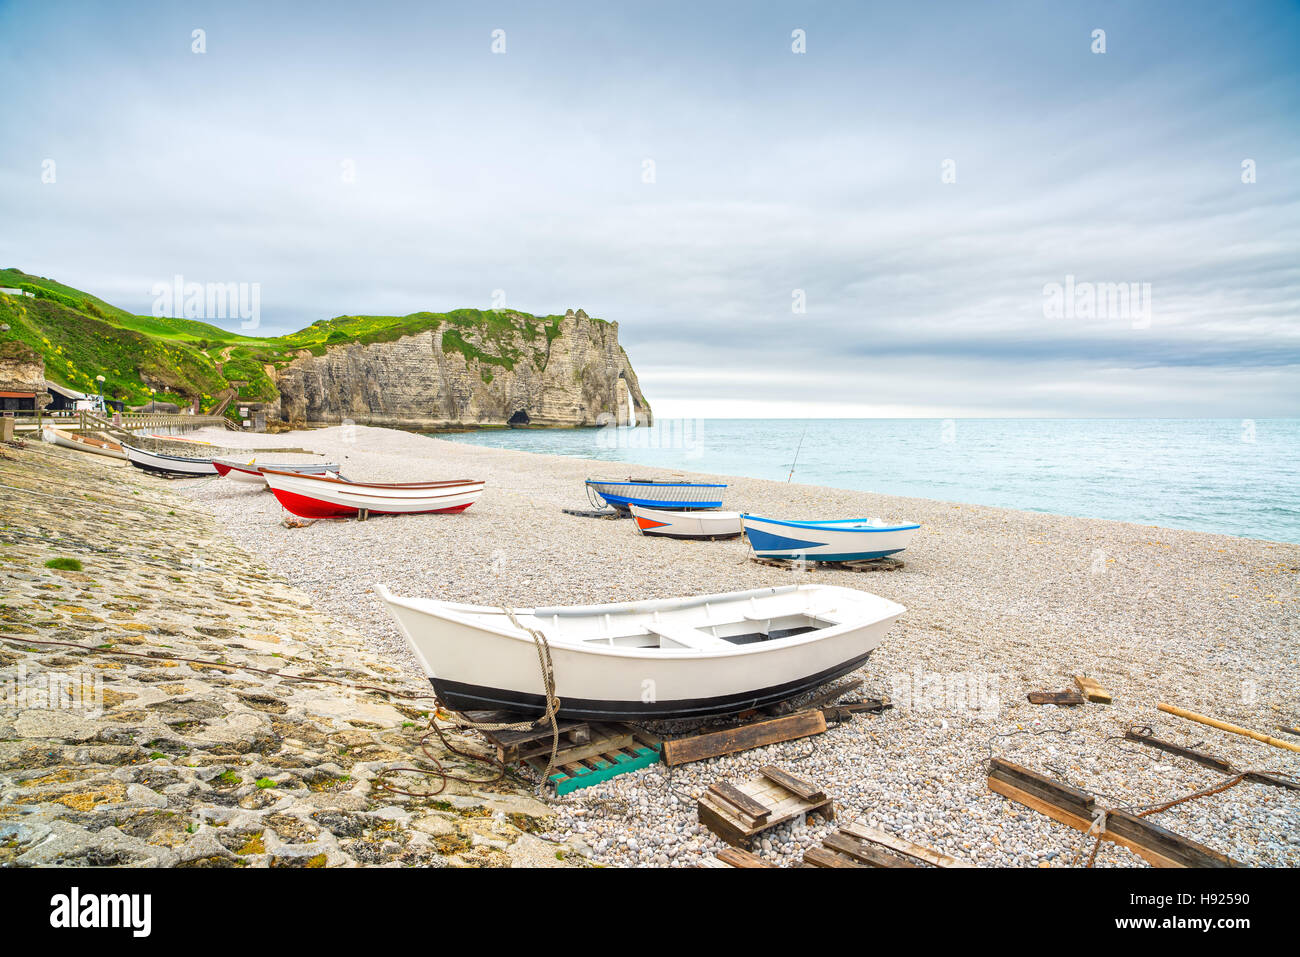 Etretat village, its bay beach, Aval cliff and boats. Normandy, France, Europe. - Stock Image